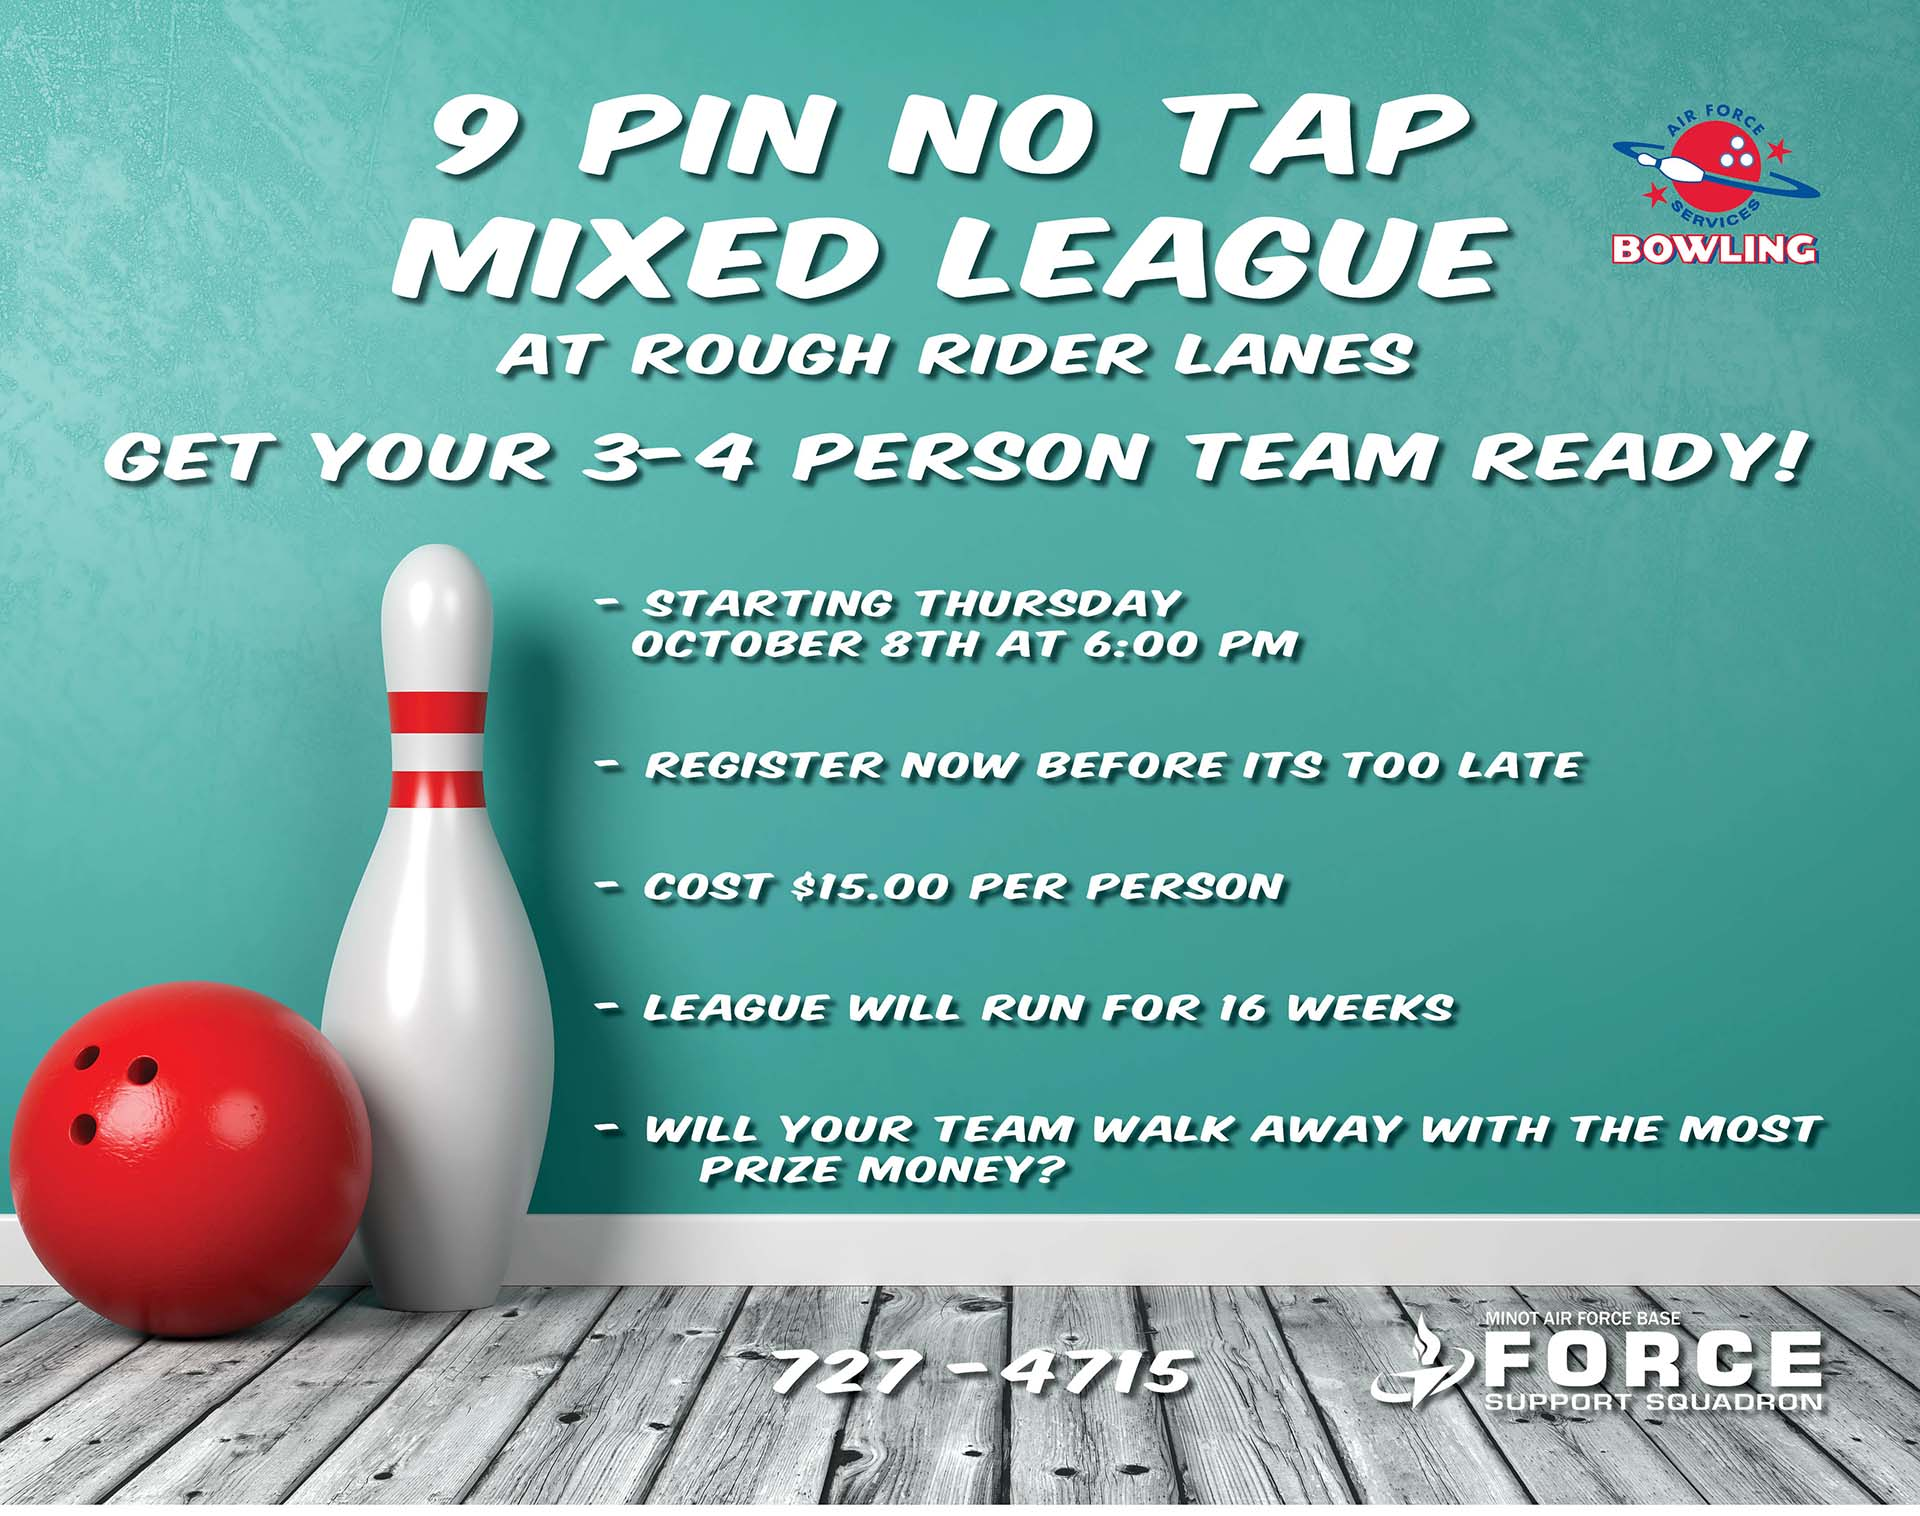 Fun 9 Pin No Tap League